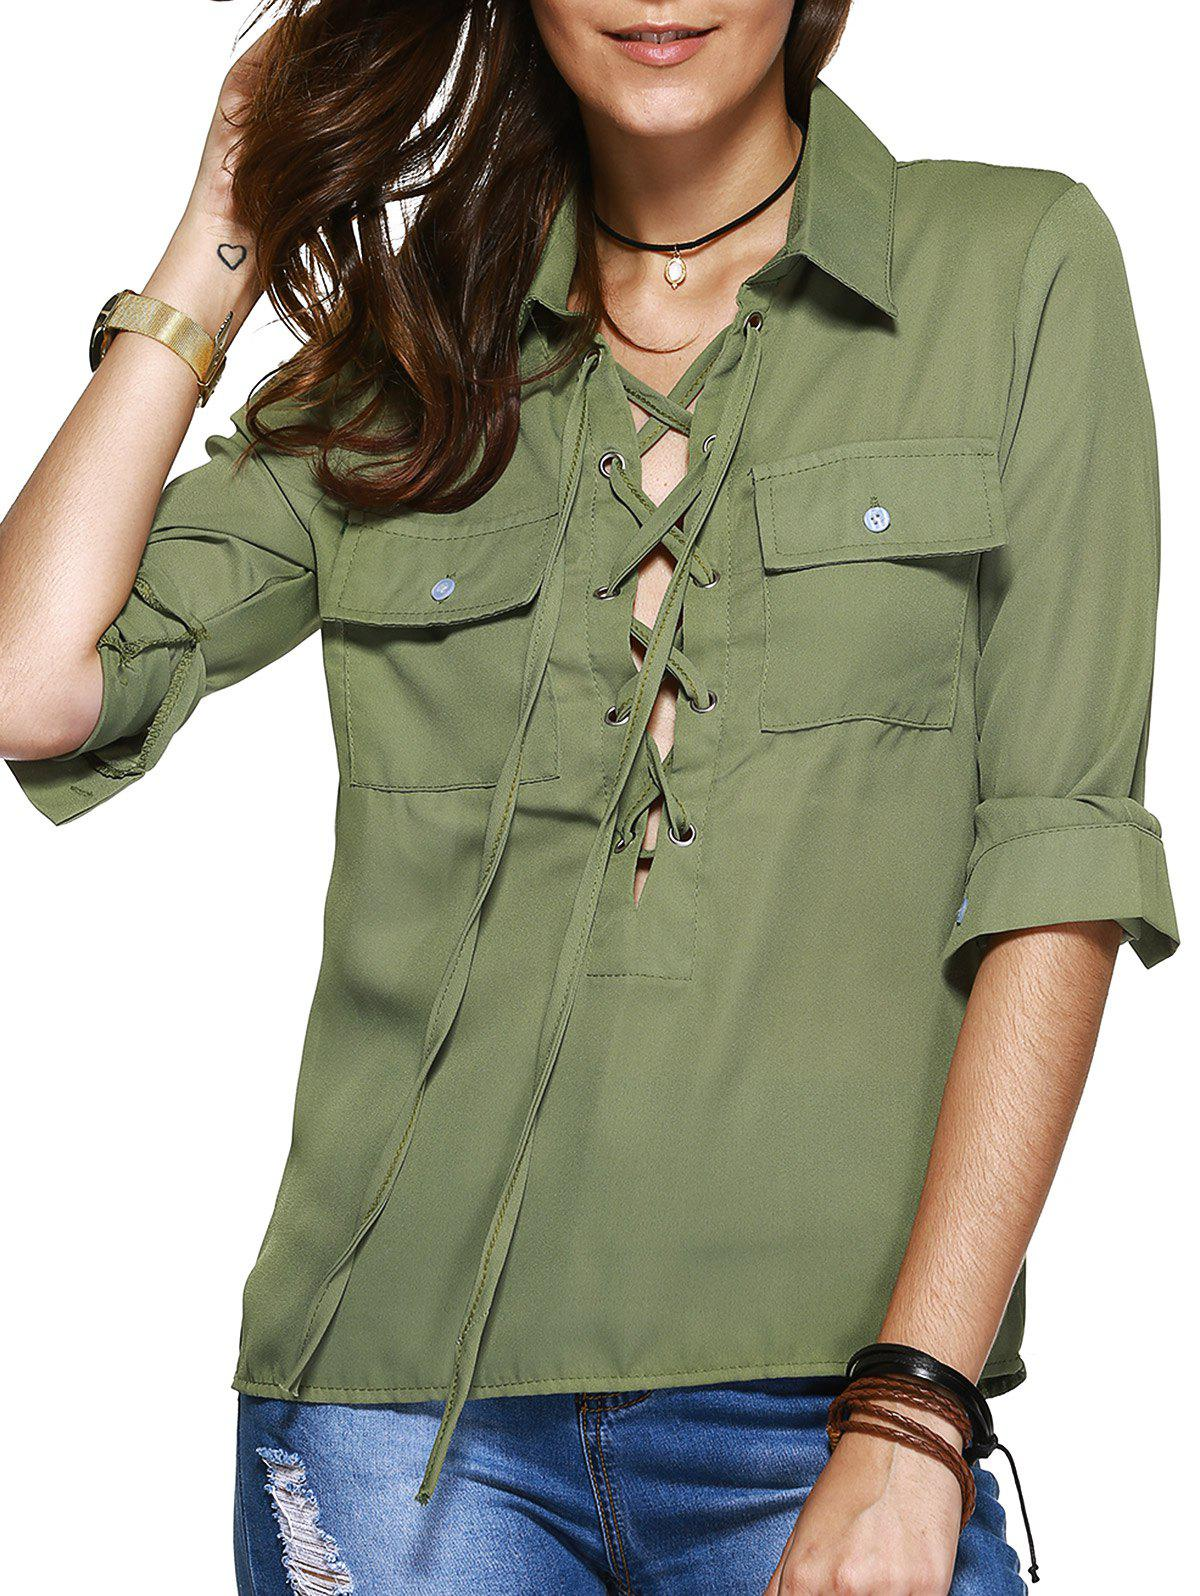 Simple Design Women's Lace Up Long Sleeves Blouse - OLIVE GREEN L